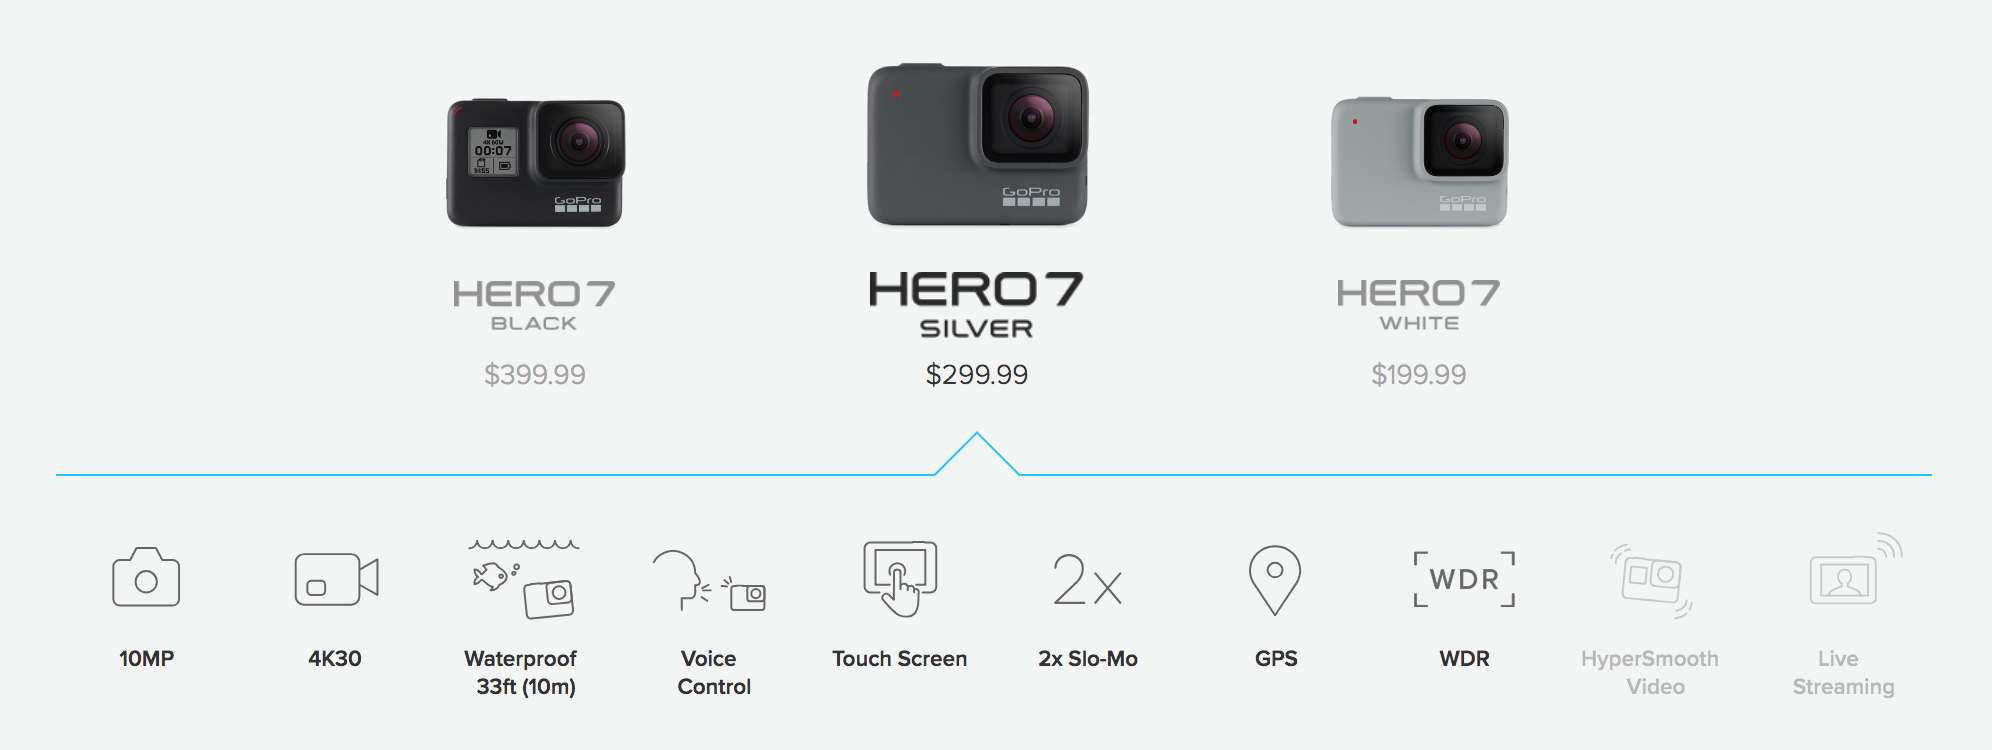 GoPro announces HERO7 lineup with new \'HyperSmooth\' video, pre-order ...